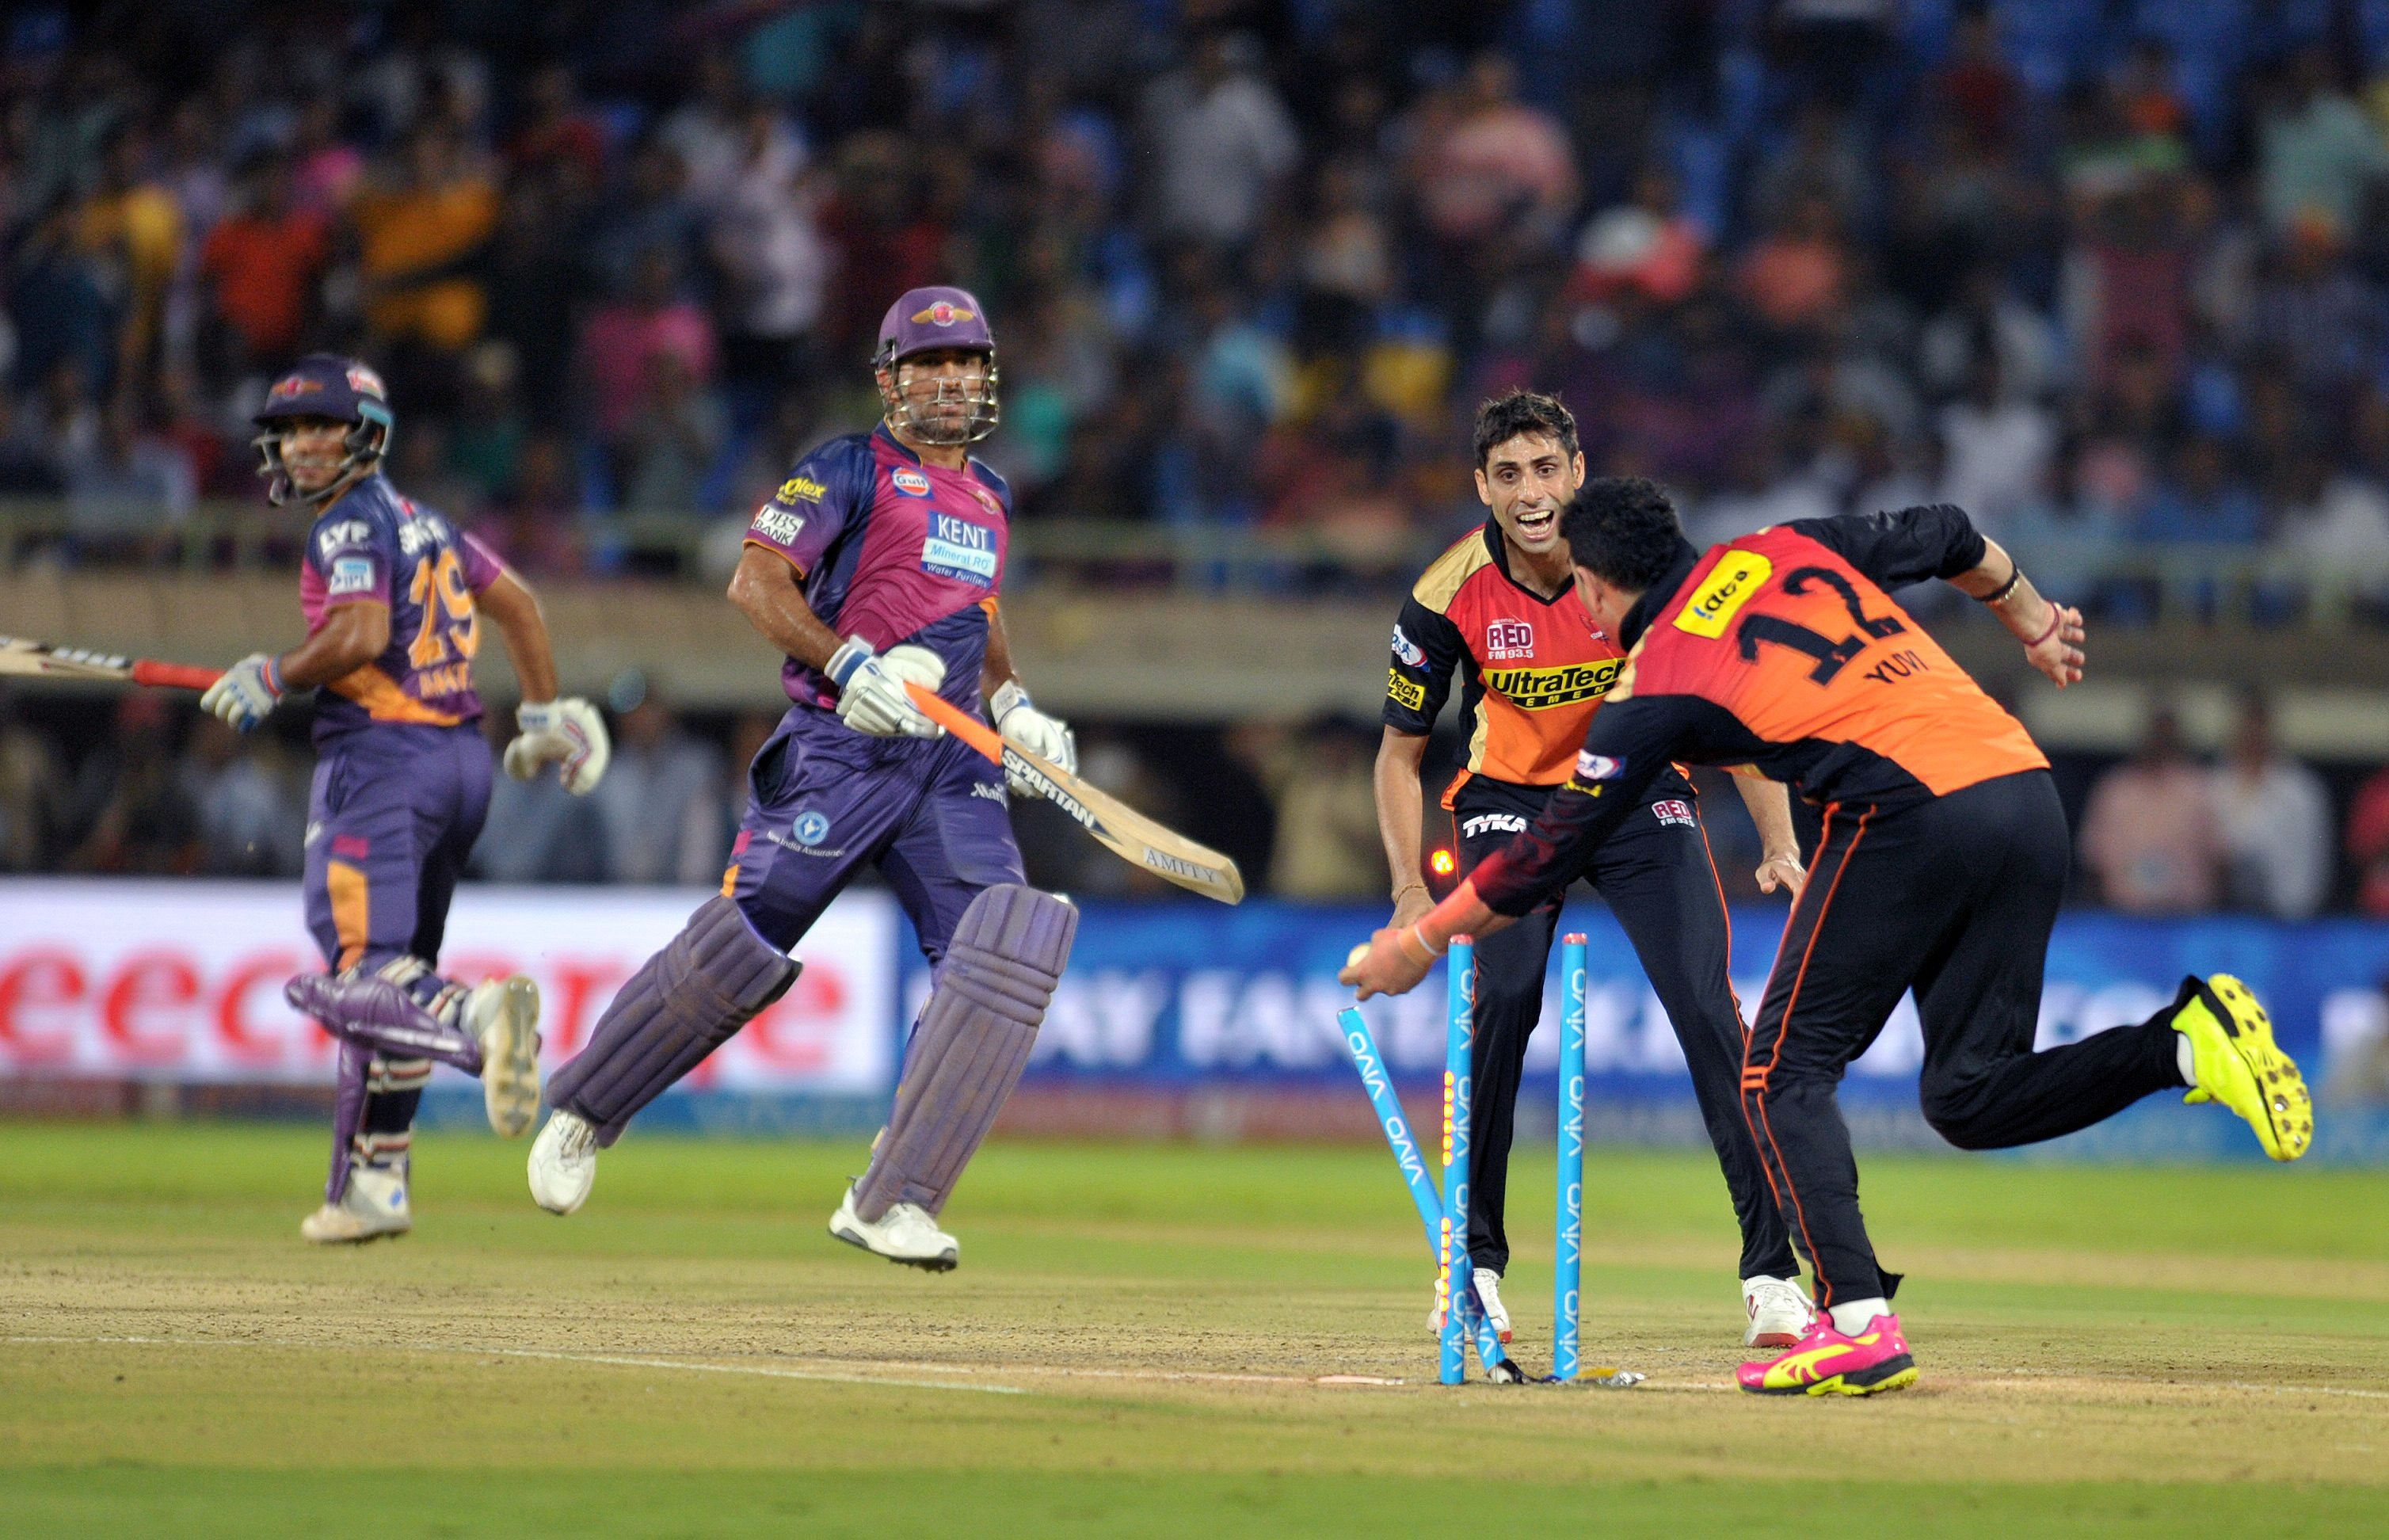 Sunrisers go top with win over Supergiants